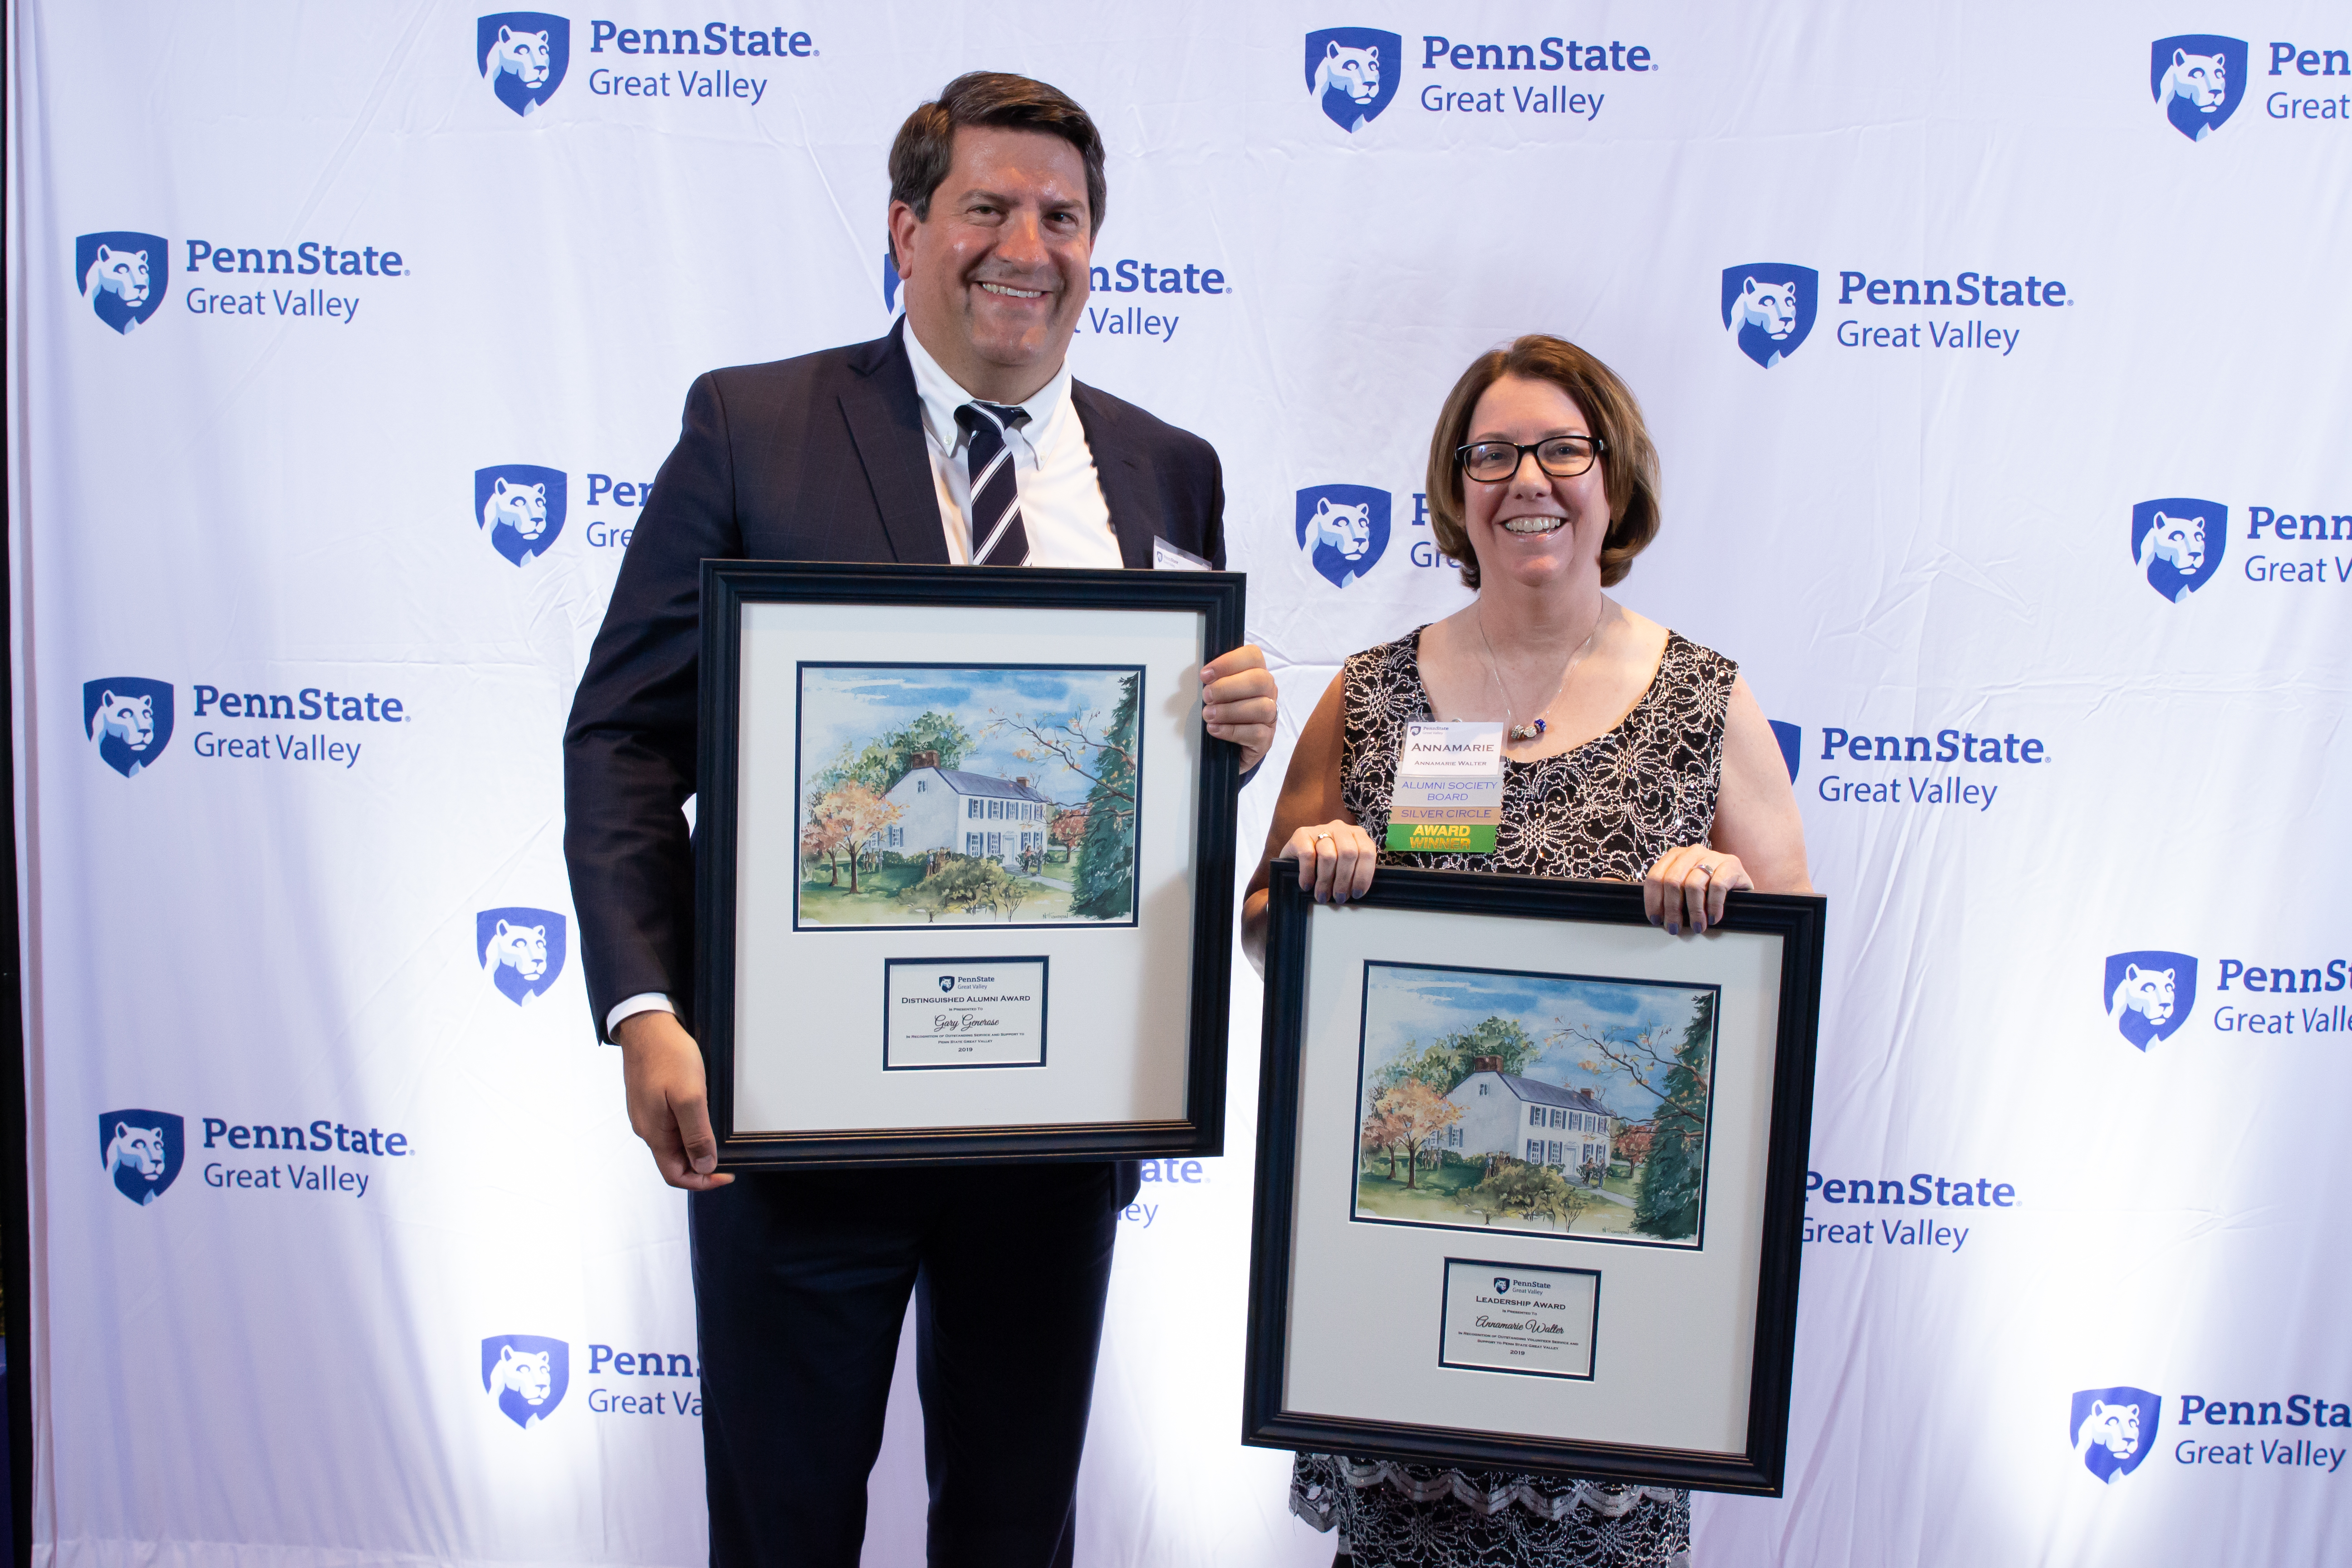 Gary Generose and Annamarie Walter with their awards